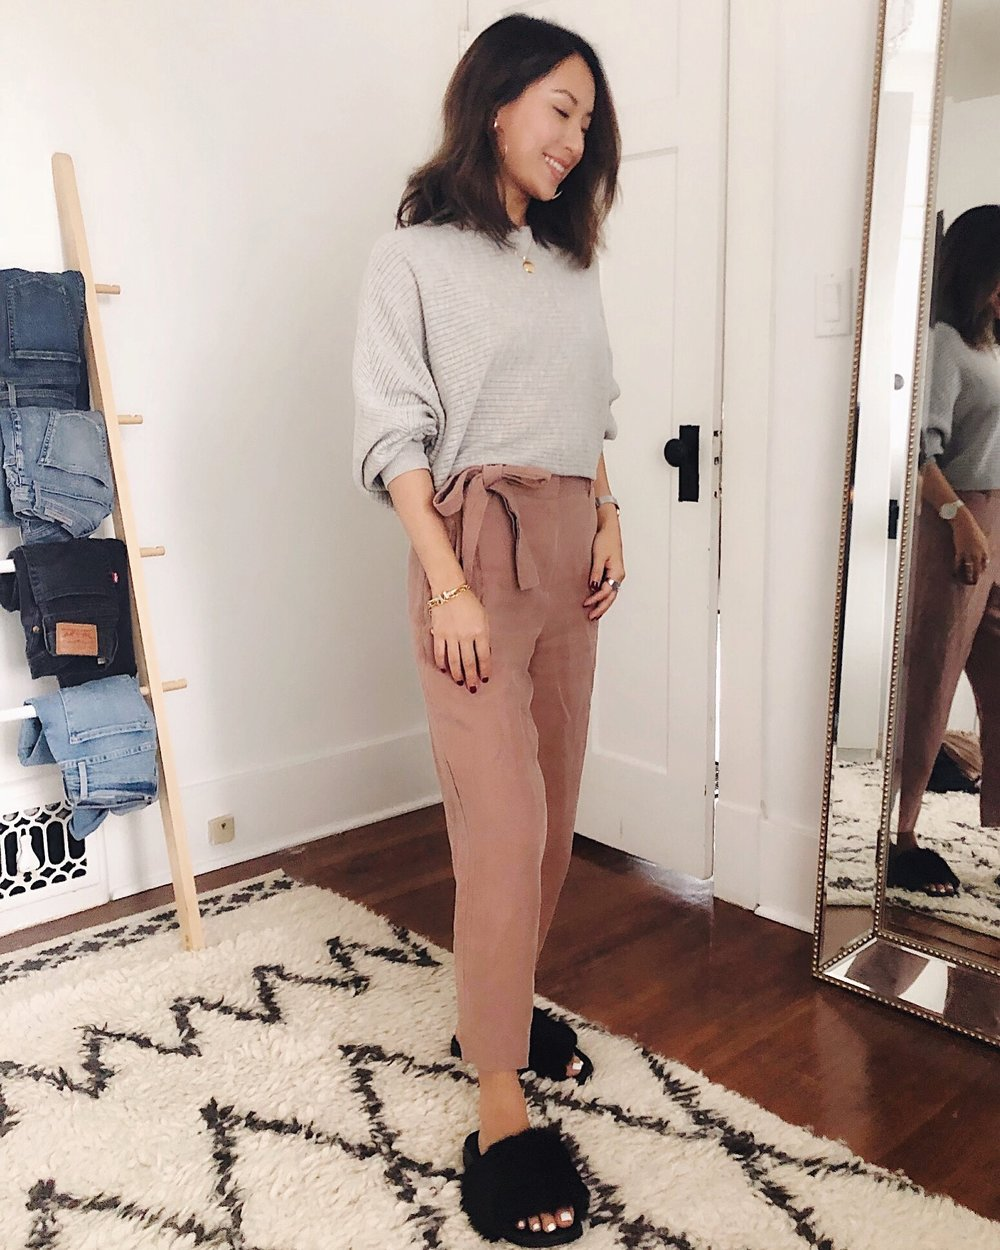 Transitioning into fall with neutrals. Sweater and pants from Aritzia.